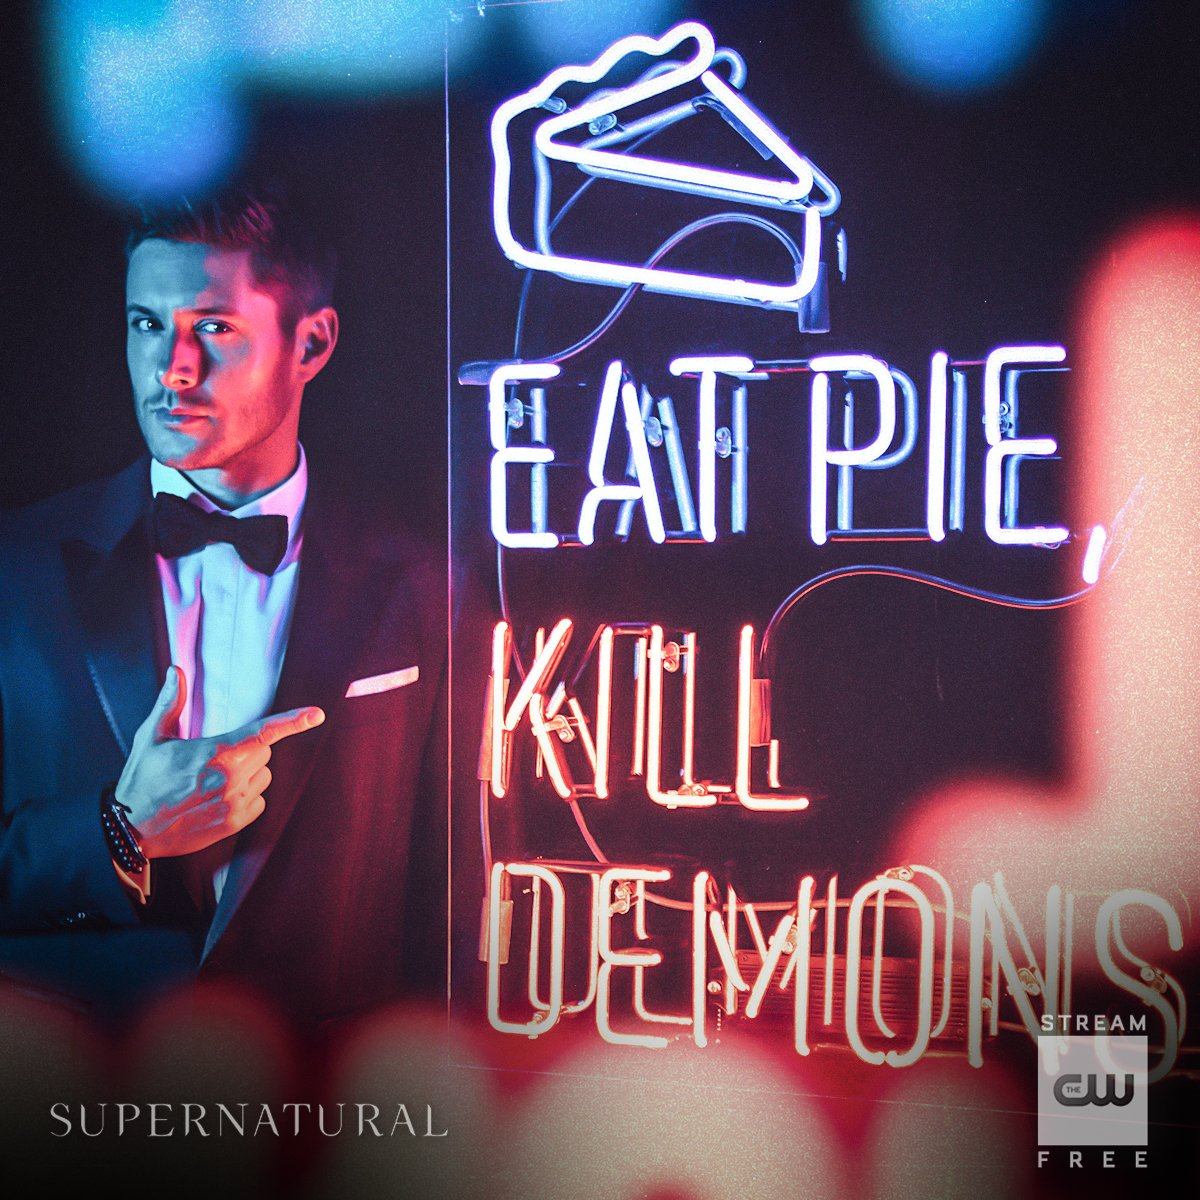 Eat pie. Kill demons. Stream the 300th episode: https://t.co/ZCIZSAIXTe #Supernatural #SPN300